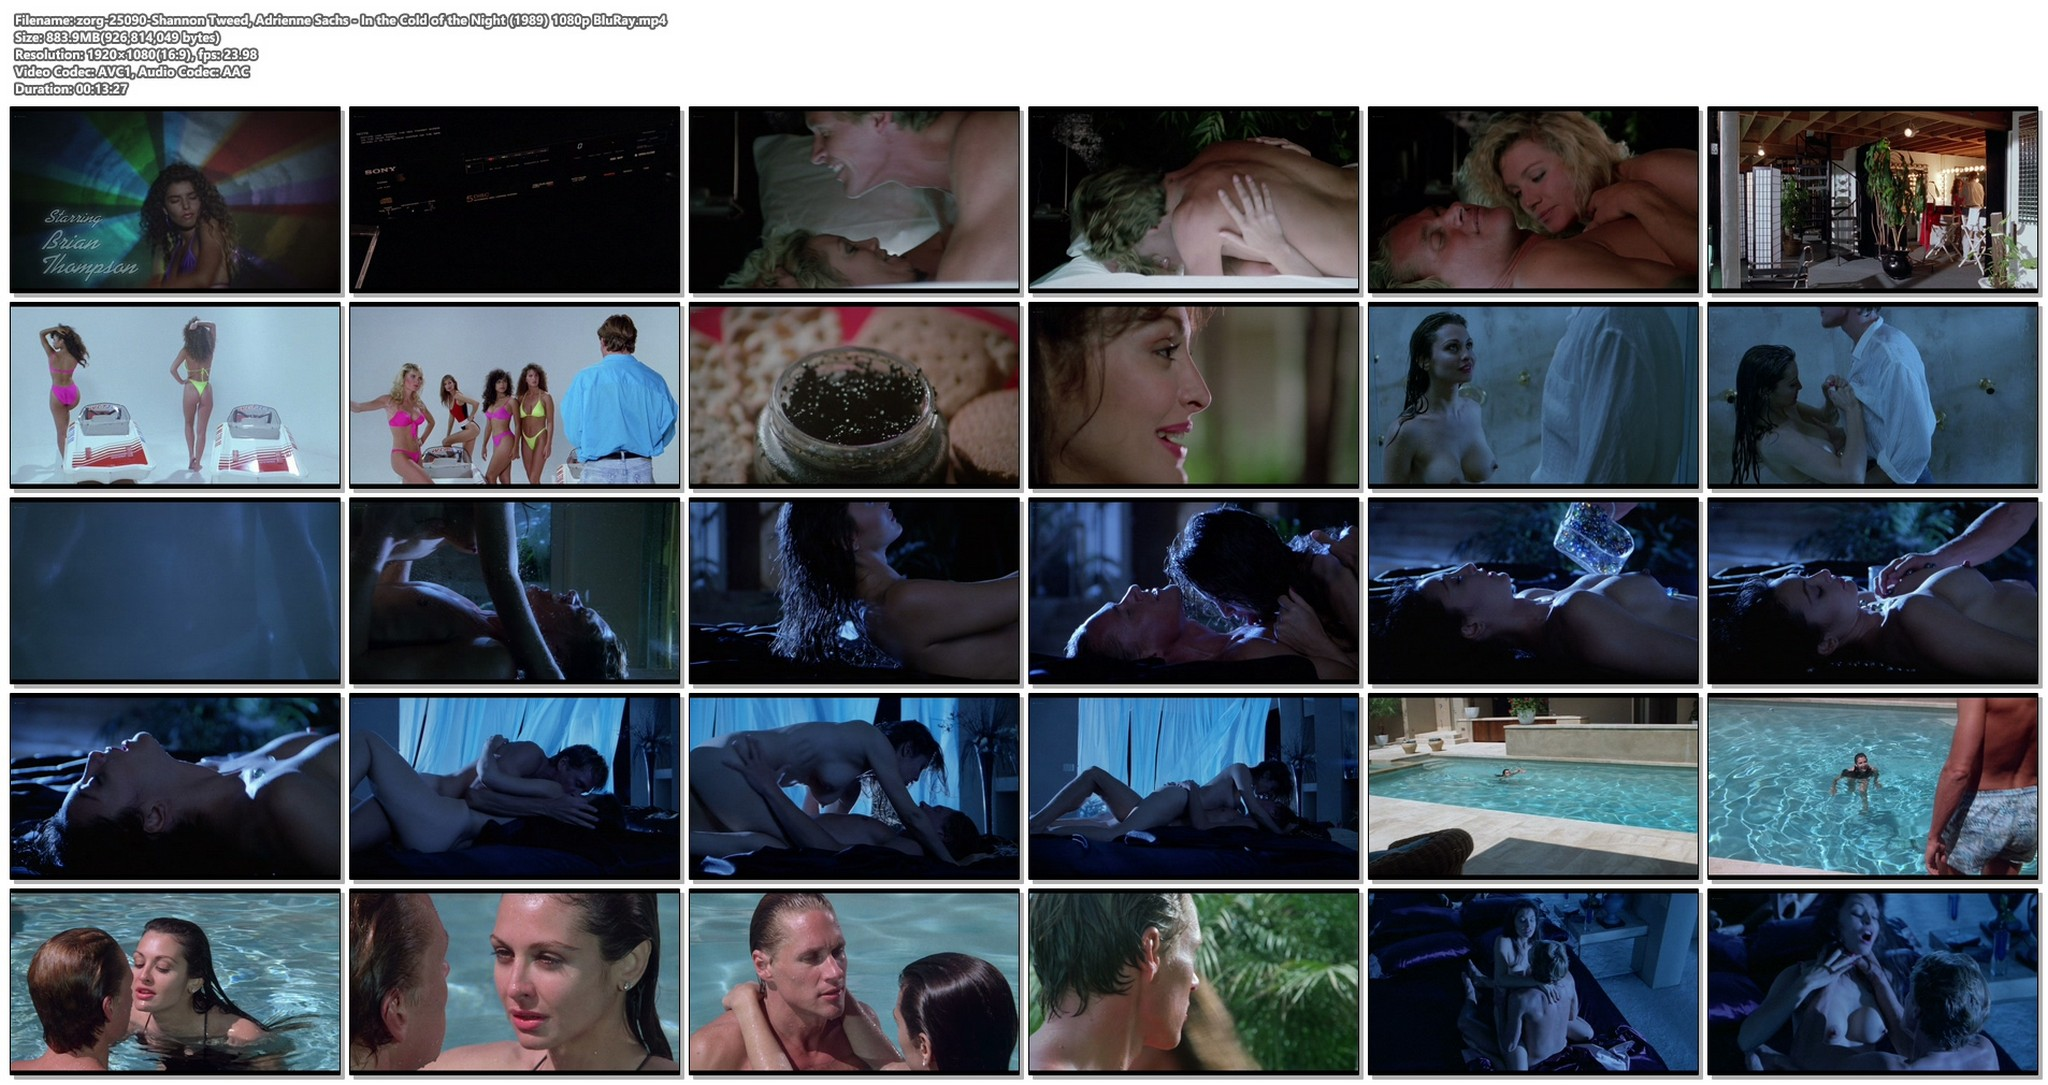 Shannon Tweed nude sex Adrienne Sachs nude sex in the shower In the Cold of the Night 1989 1080p BluRay 19